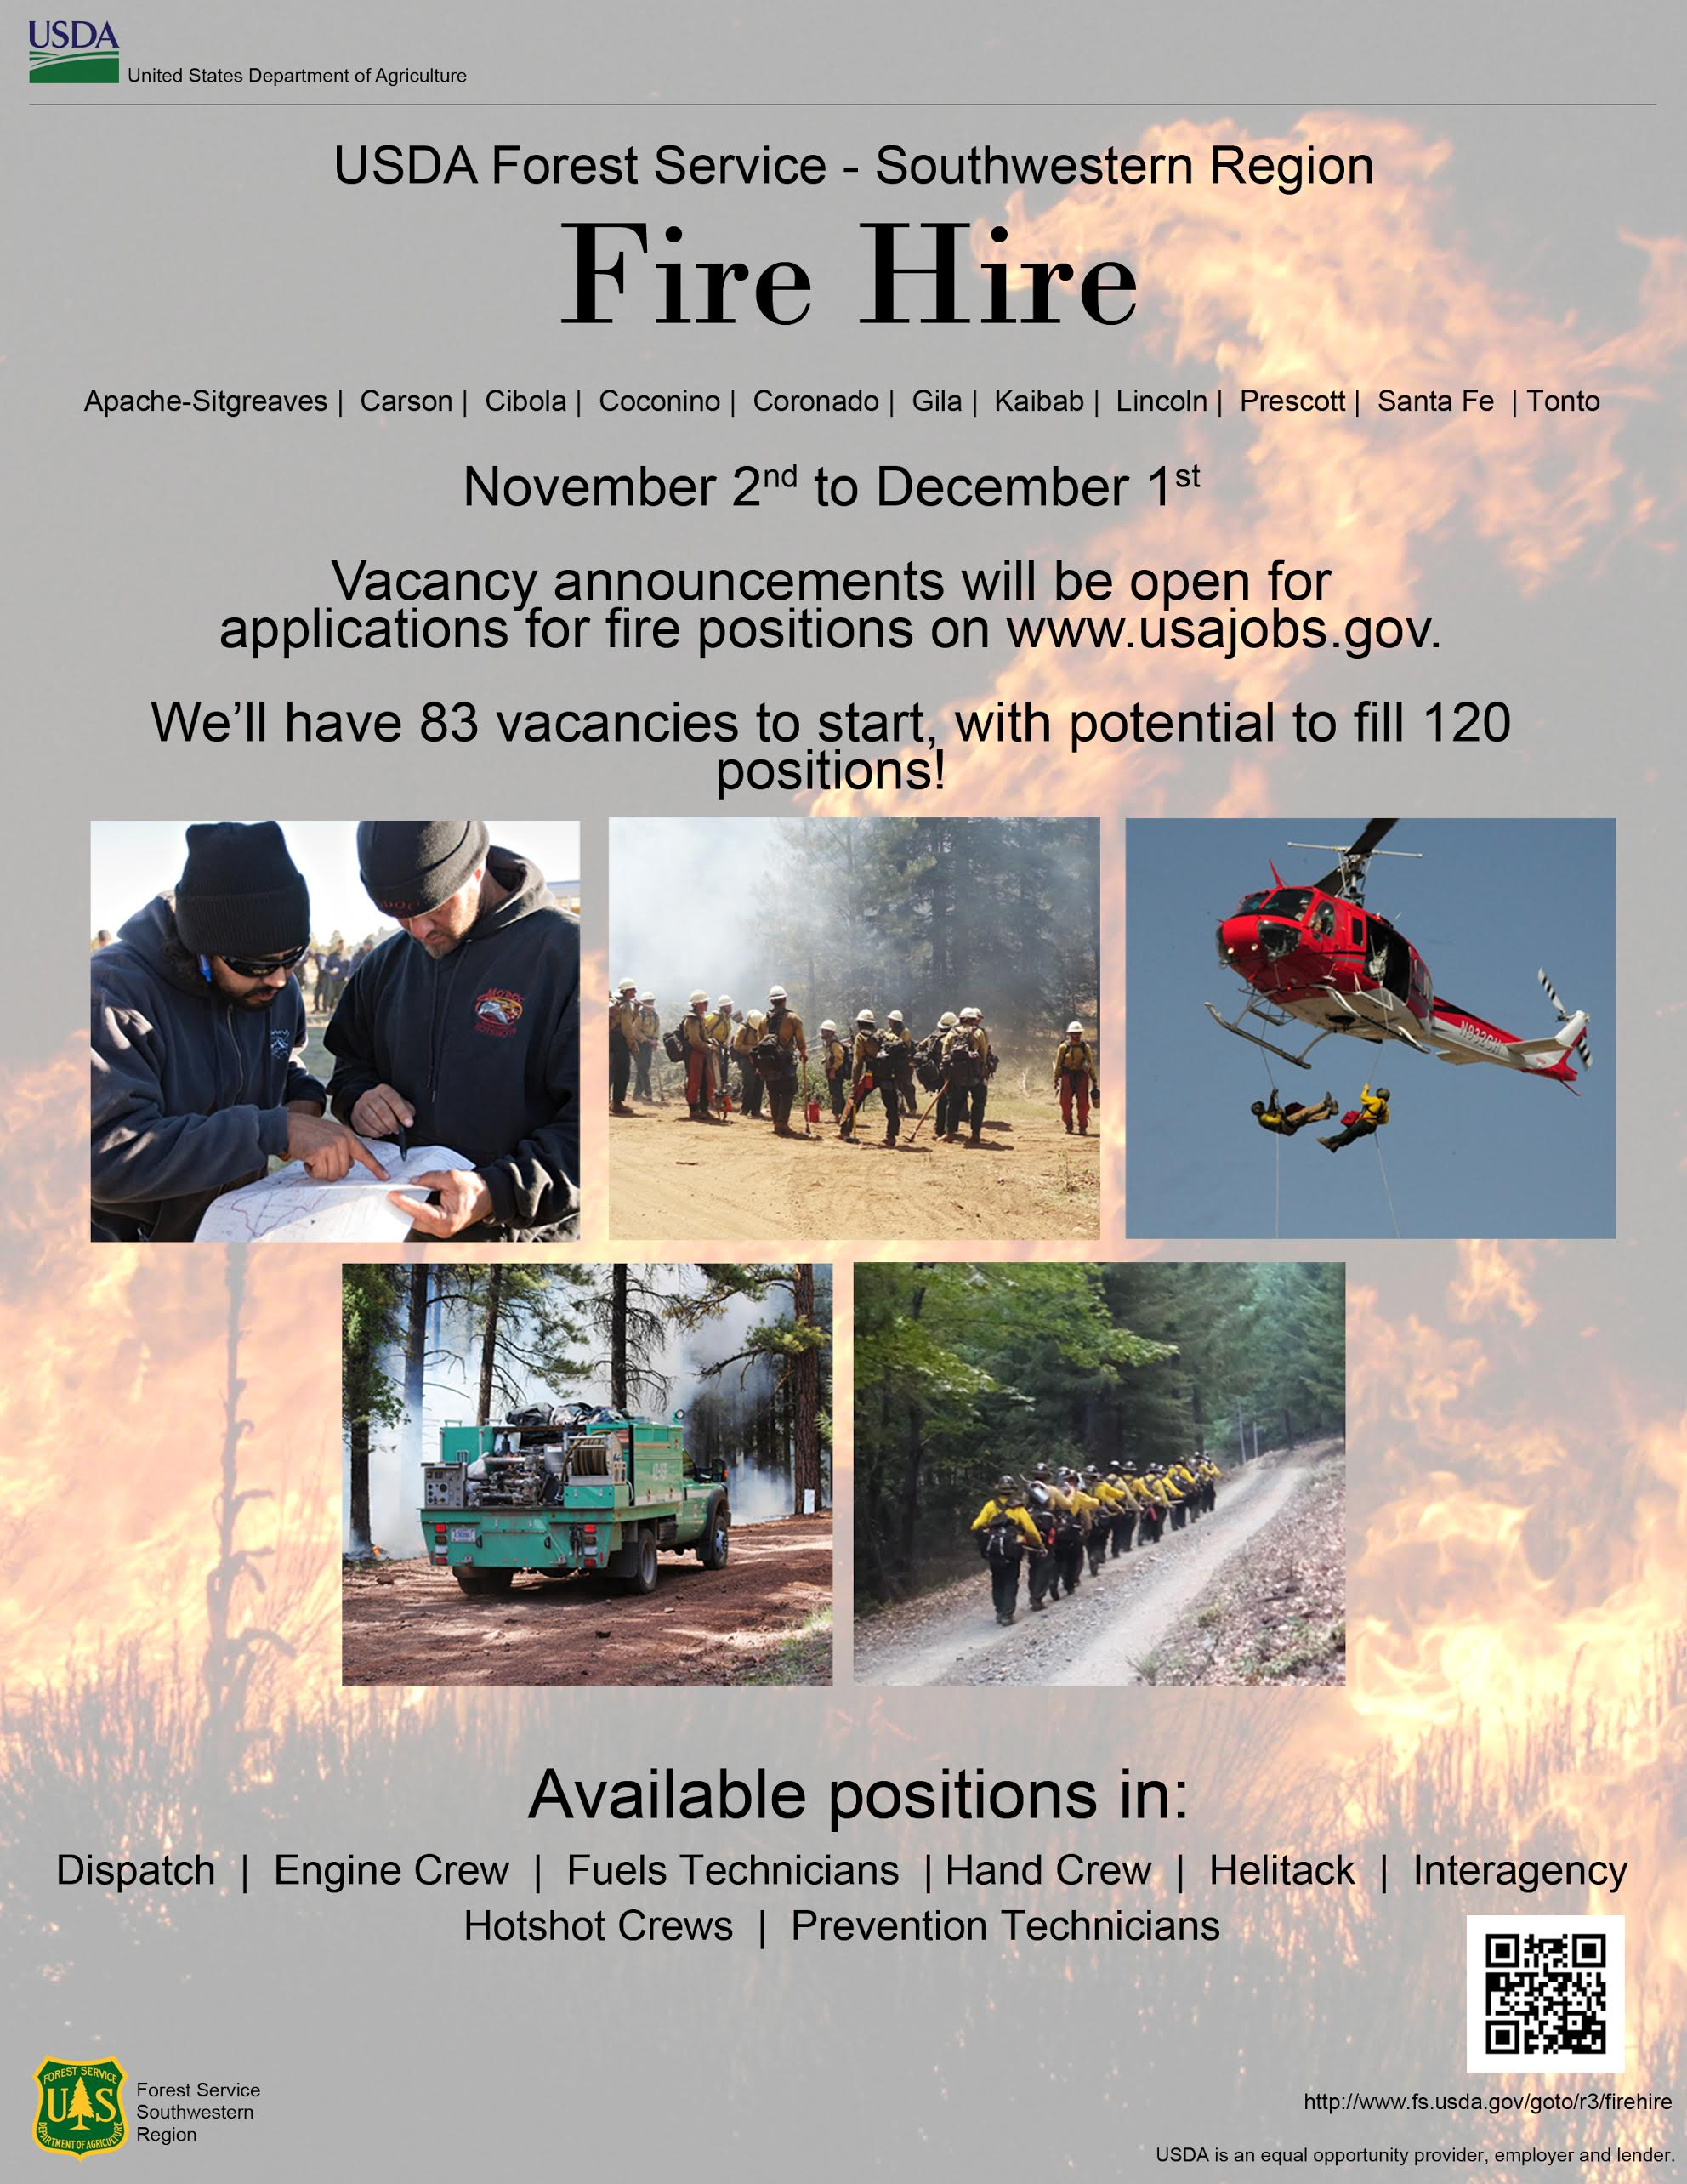 Fire hire flyer | Image courtesy of Kaibab National Forest, St. George News